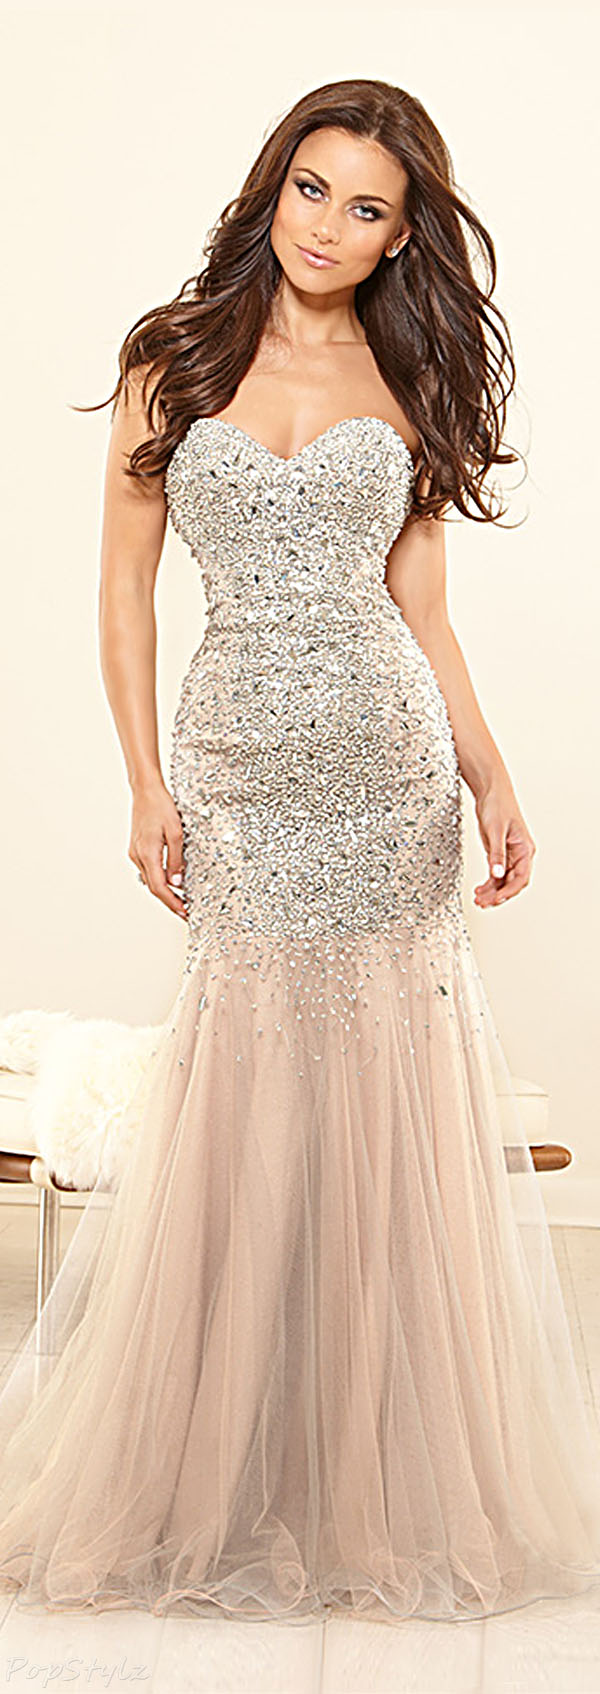 Terani Couture P1575 Strapless Long Gown